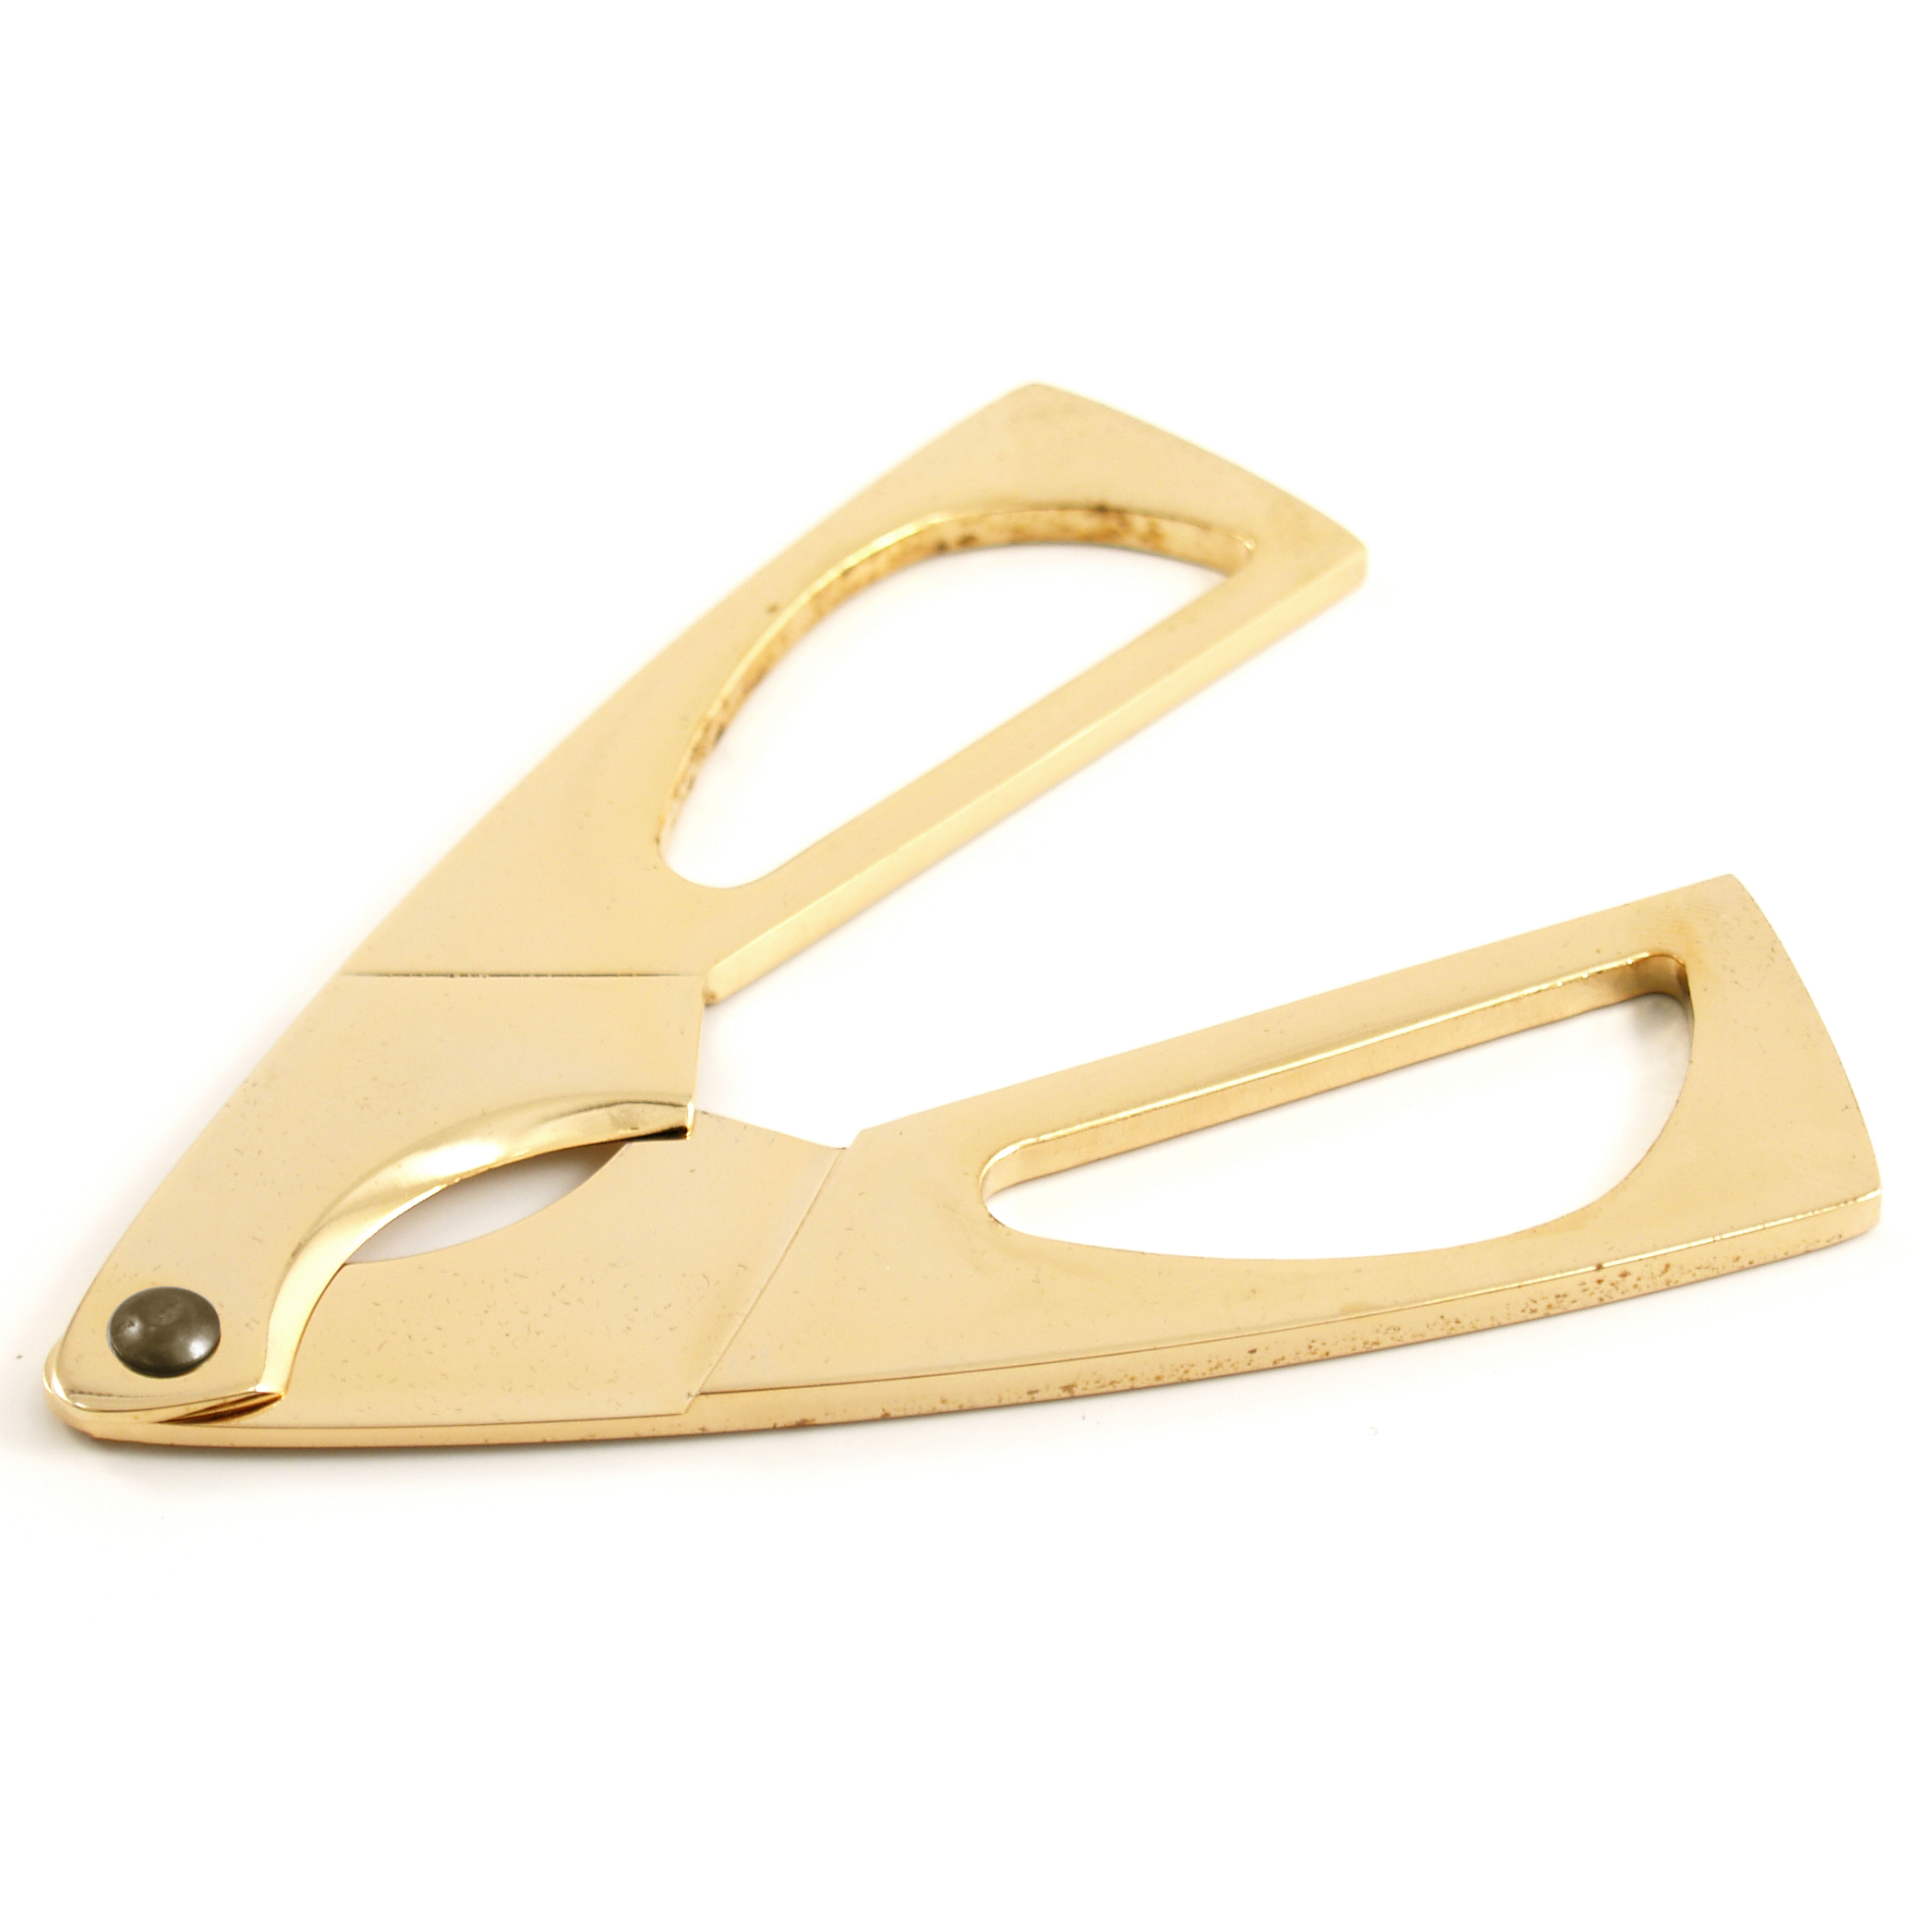 Gold Cigar Scissor Gold Plated Cutter